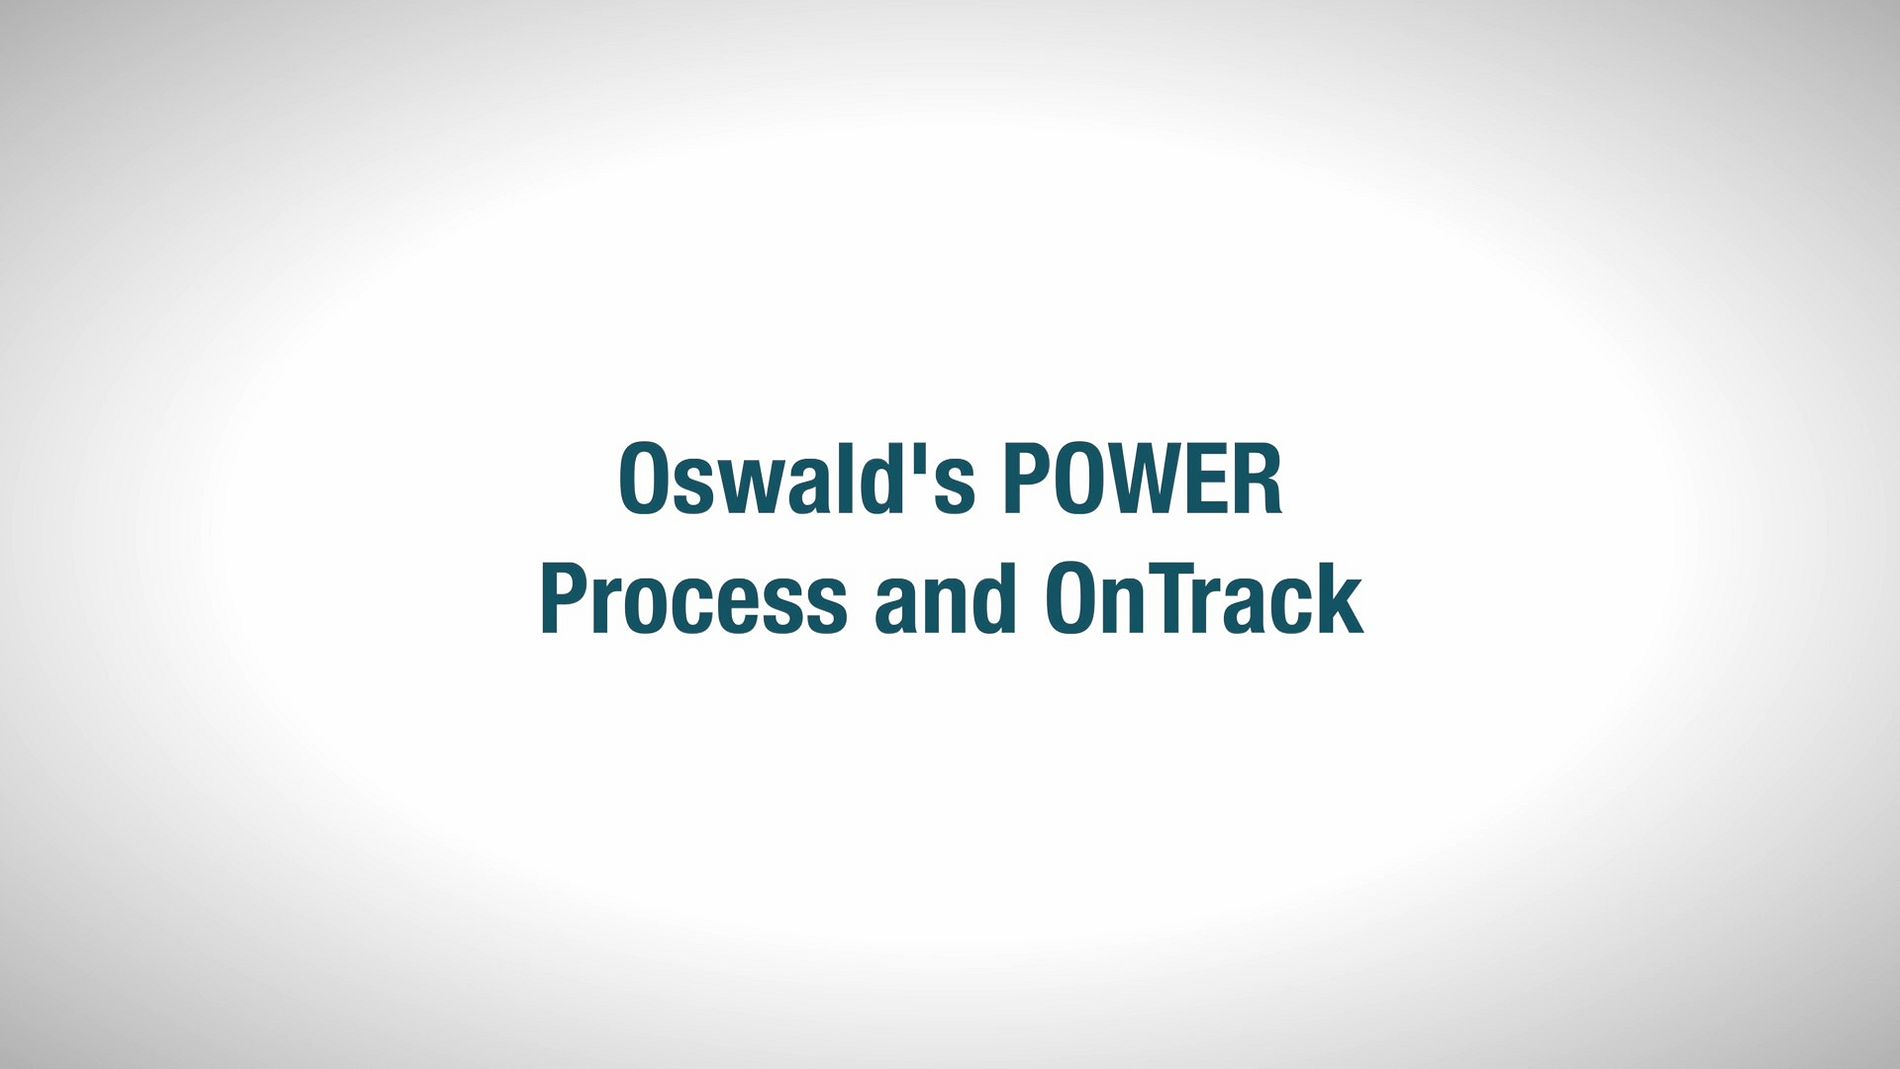 Oswald POWER Process and OnTrack